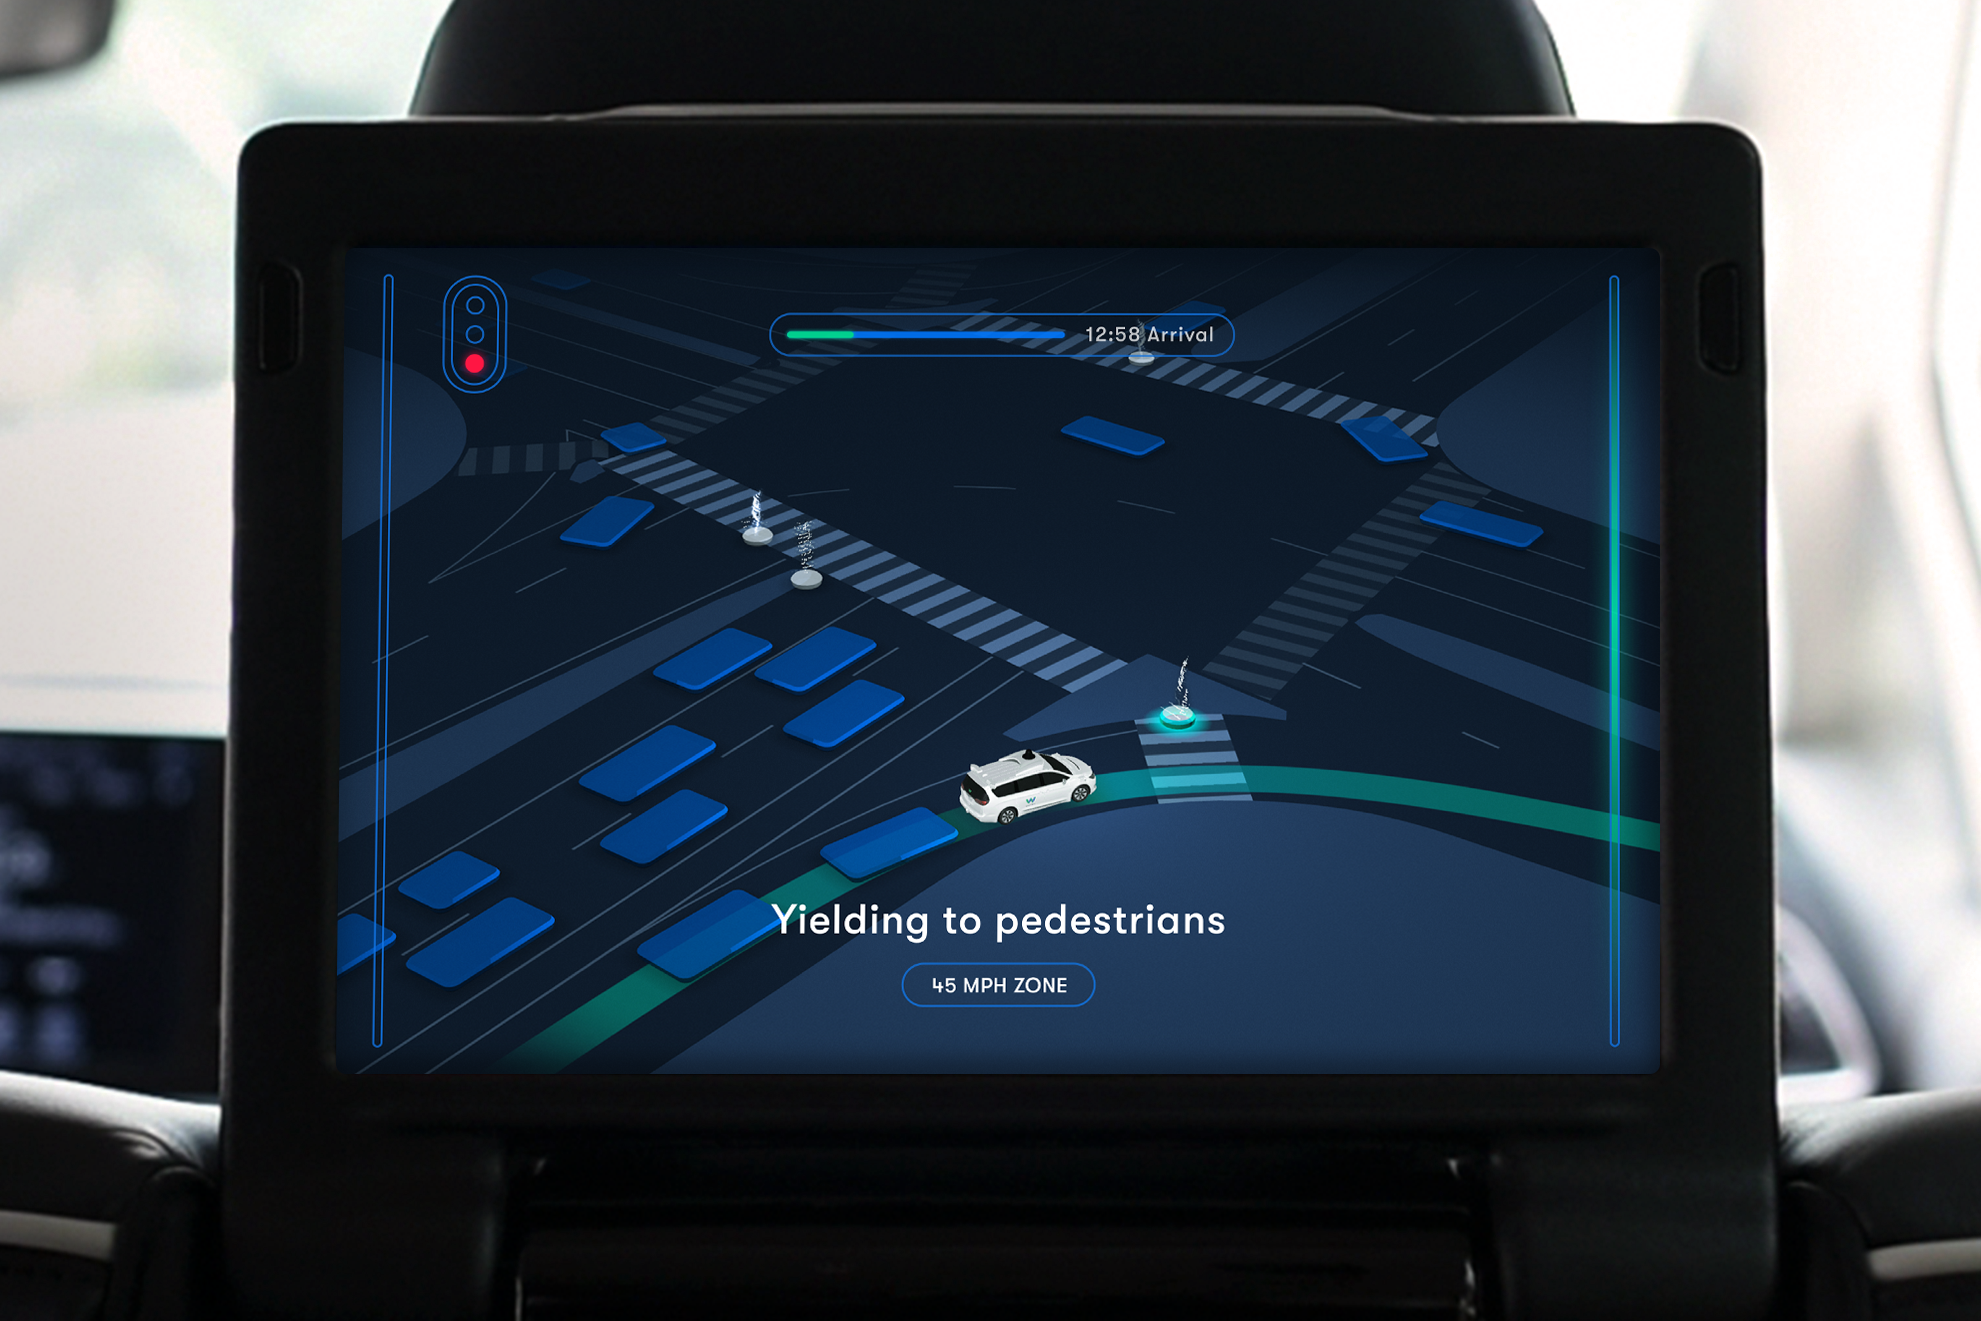 uber car seat waymo makes history testing on public roads with no one at